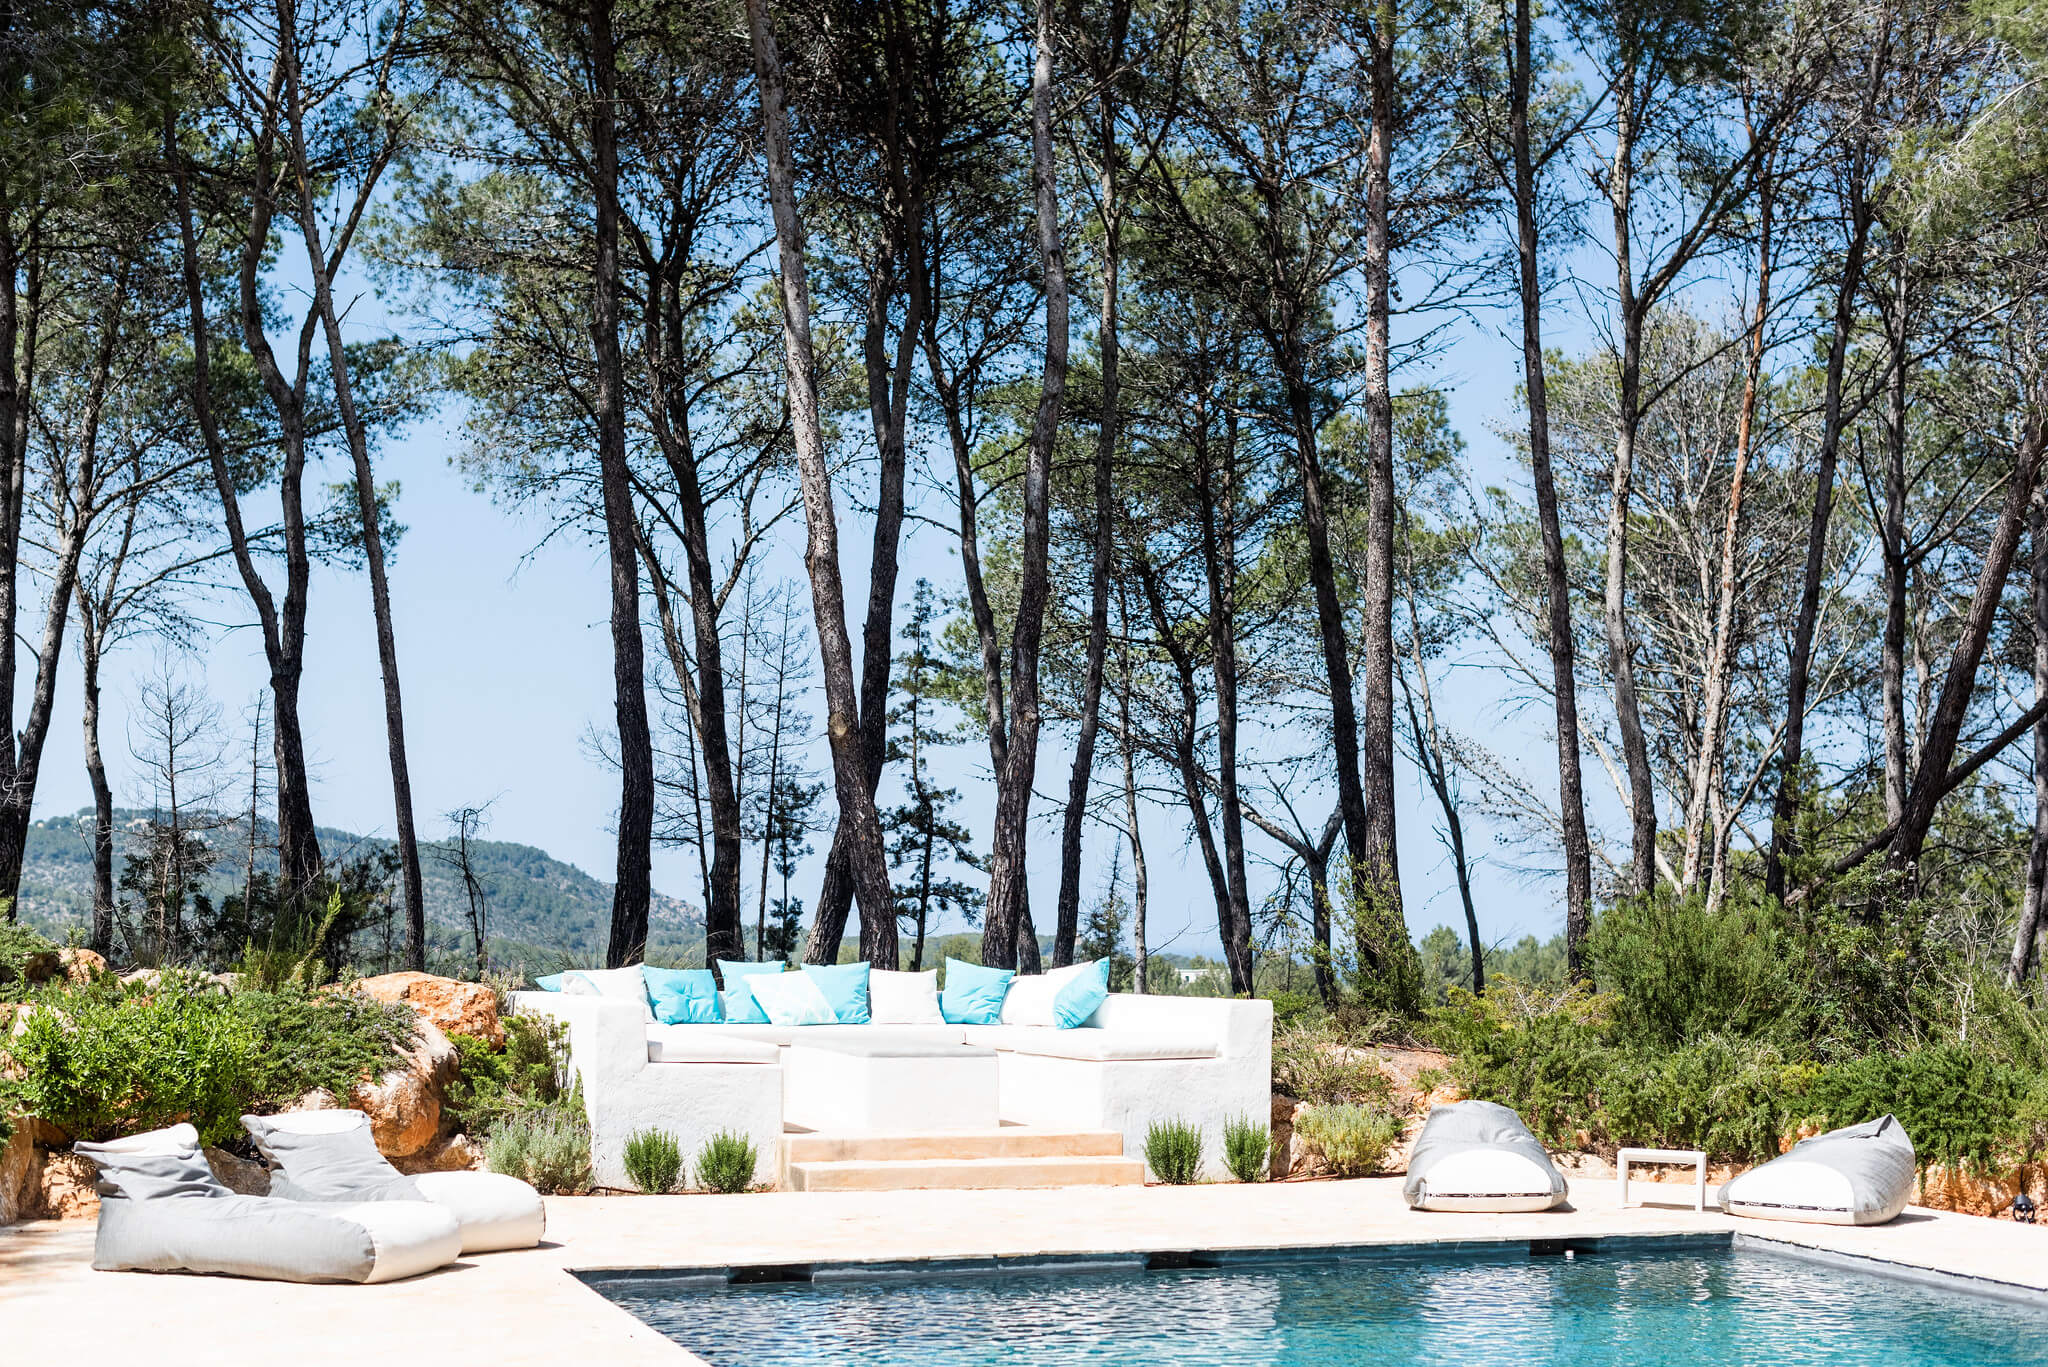 https://www.white-ibiza.com/wp-content/uploads/2020/05/white-ibiza-villas-can-terra-poolside-seating.jpg